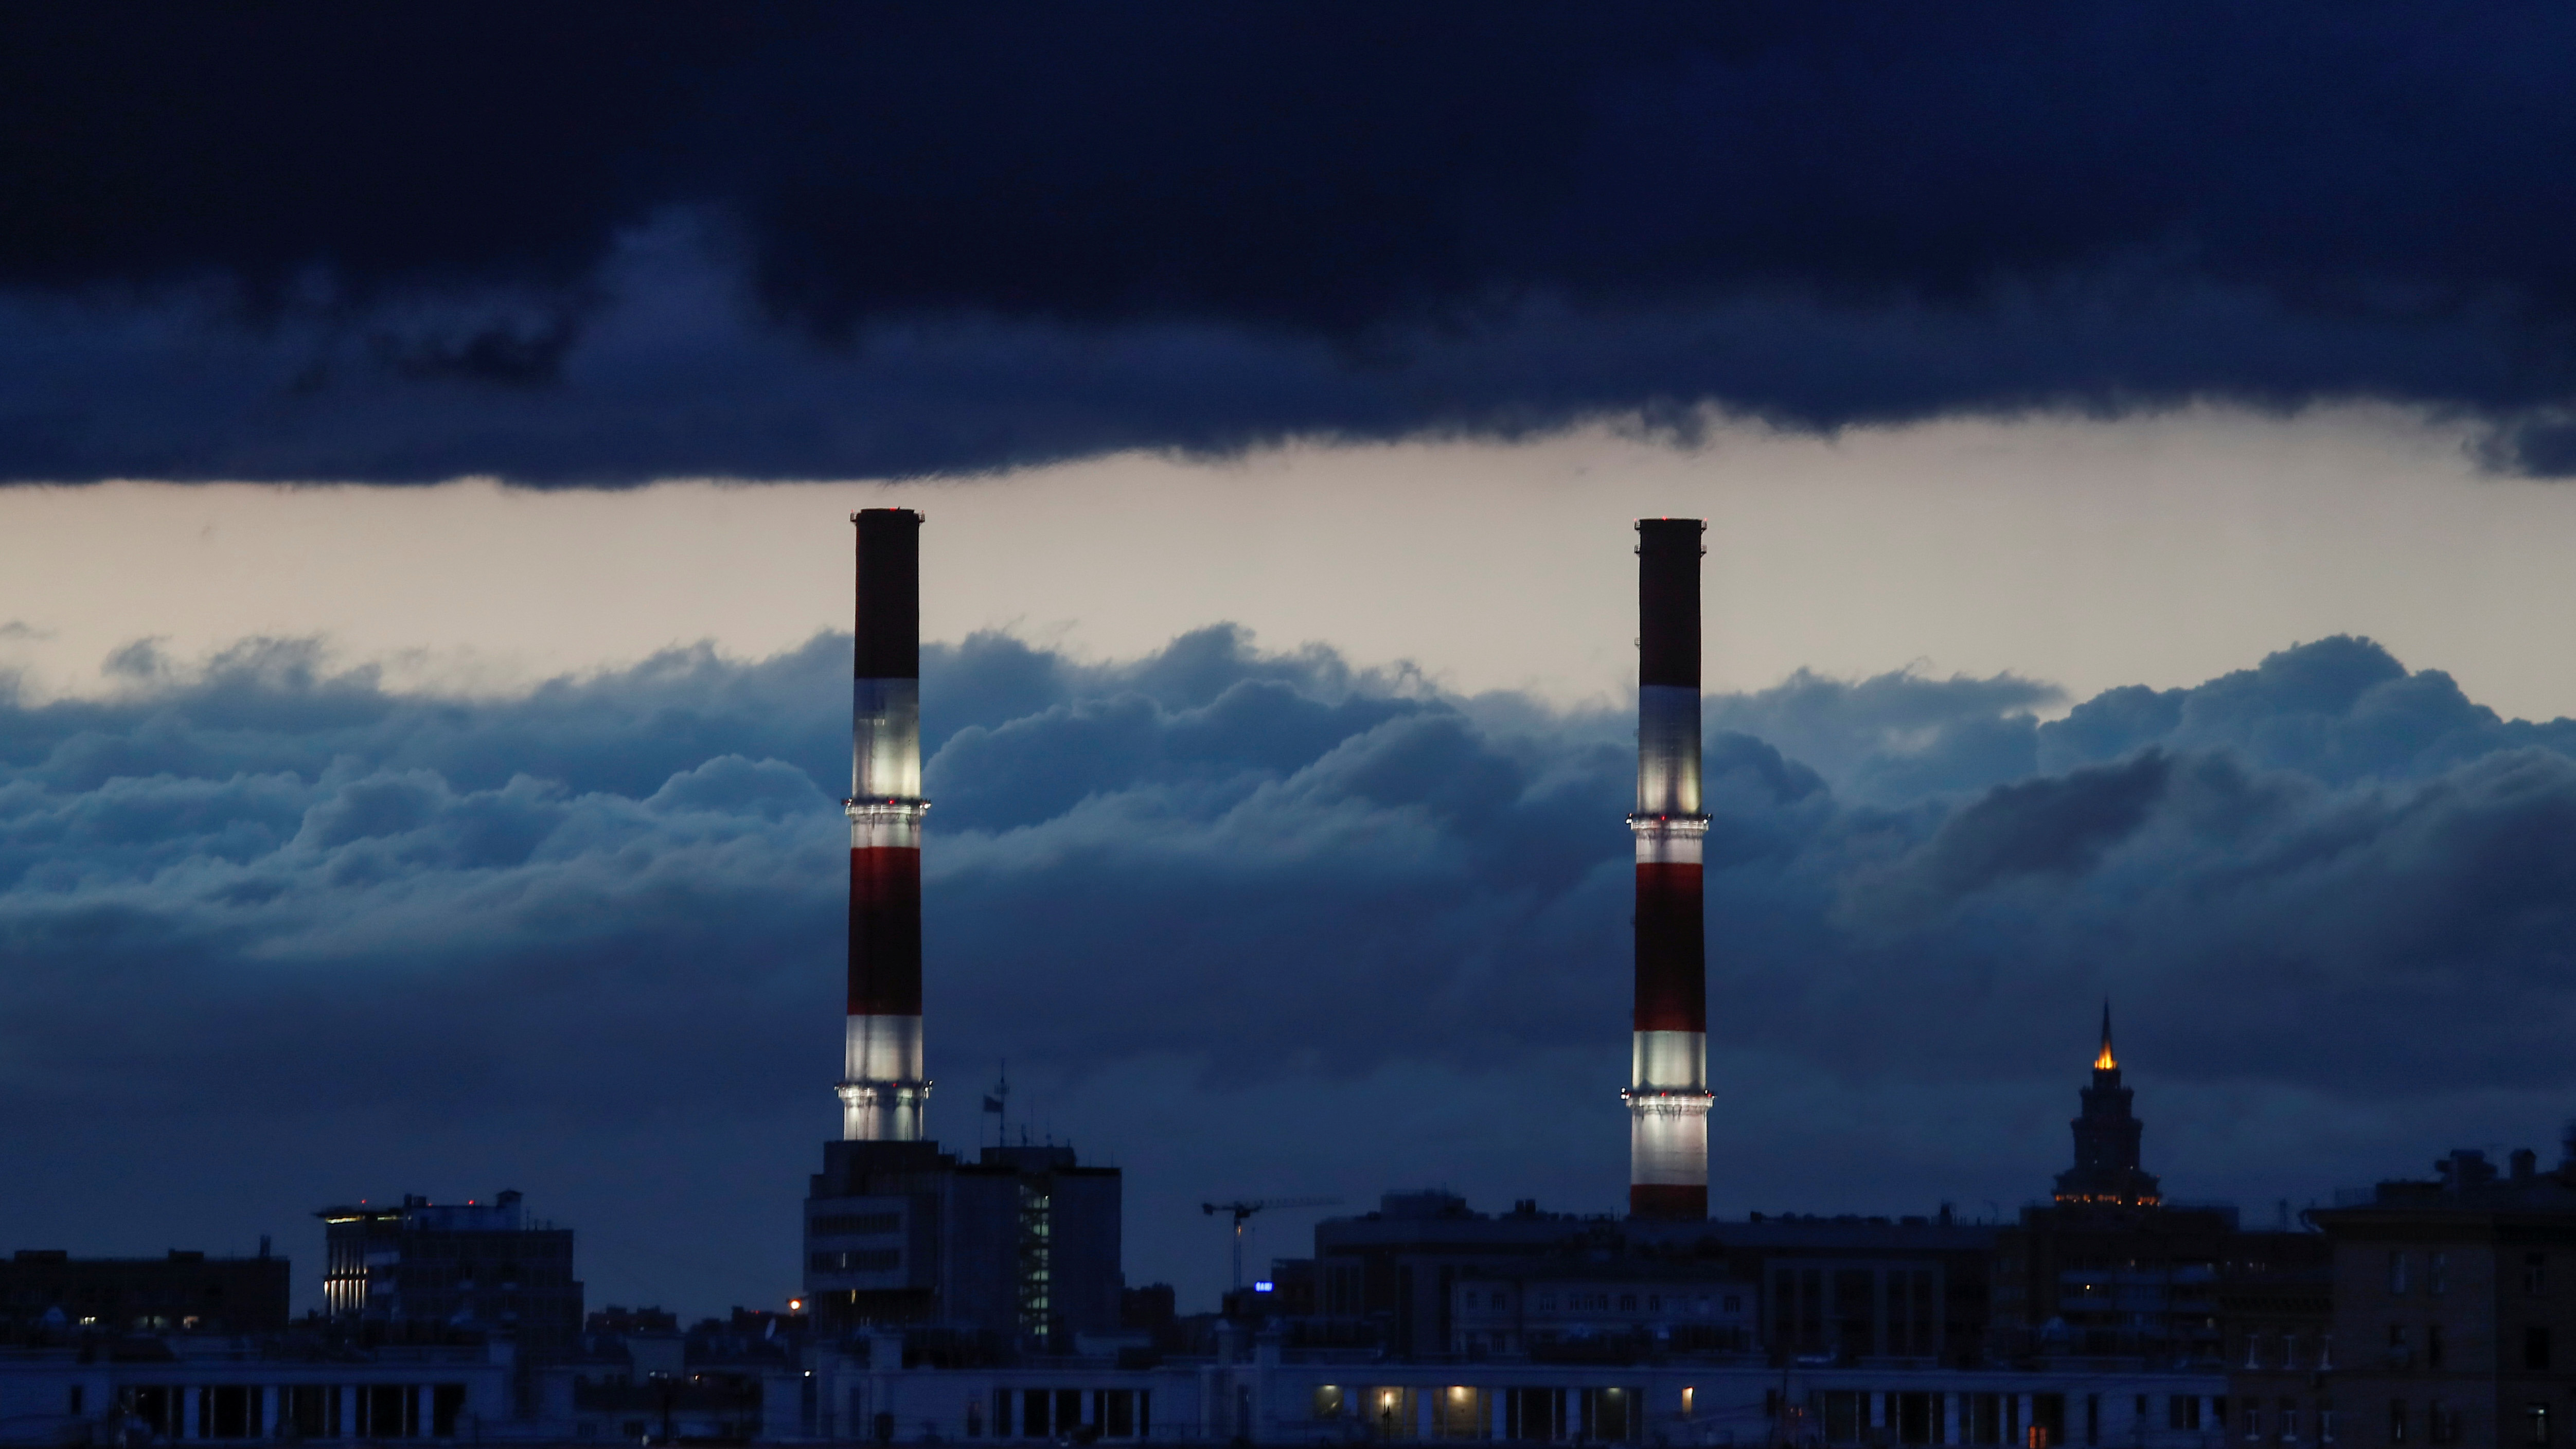 Chimneys of a heating power plant are pictured on a stormy evening in Moscow, Russia, April 21, 2018.  REUTERS/Maxim Shemetov - RC1BEC042D40